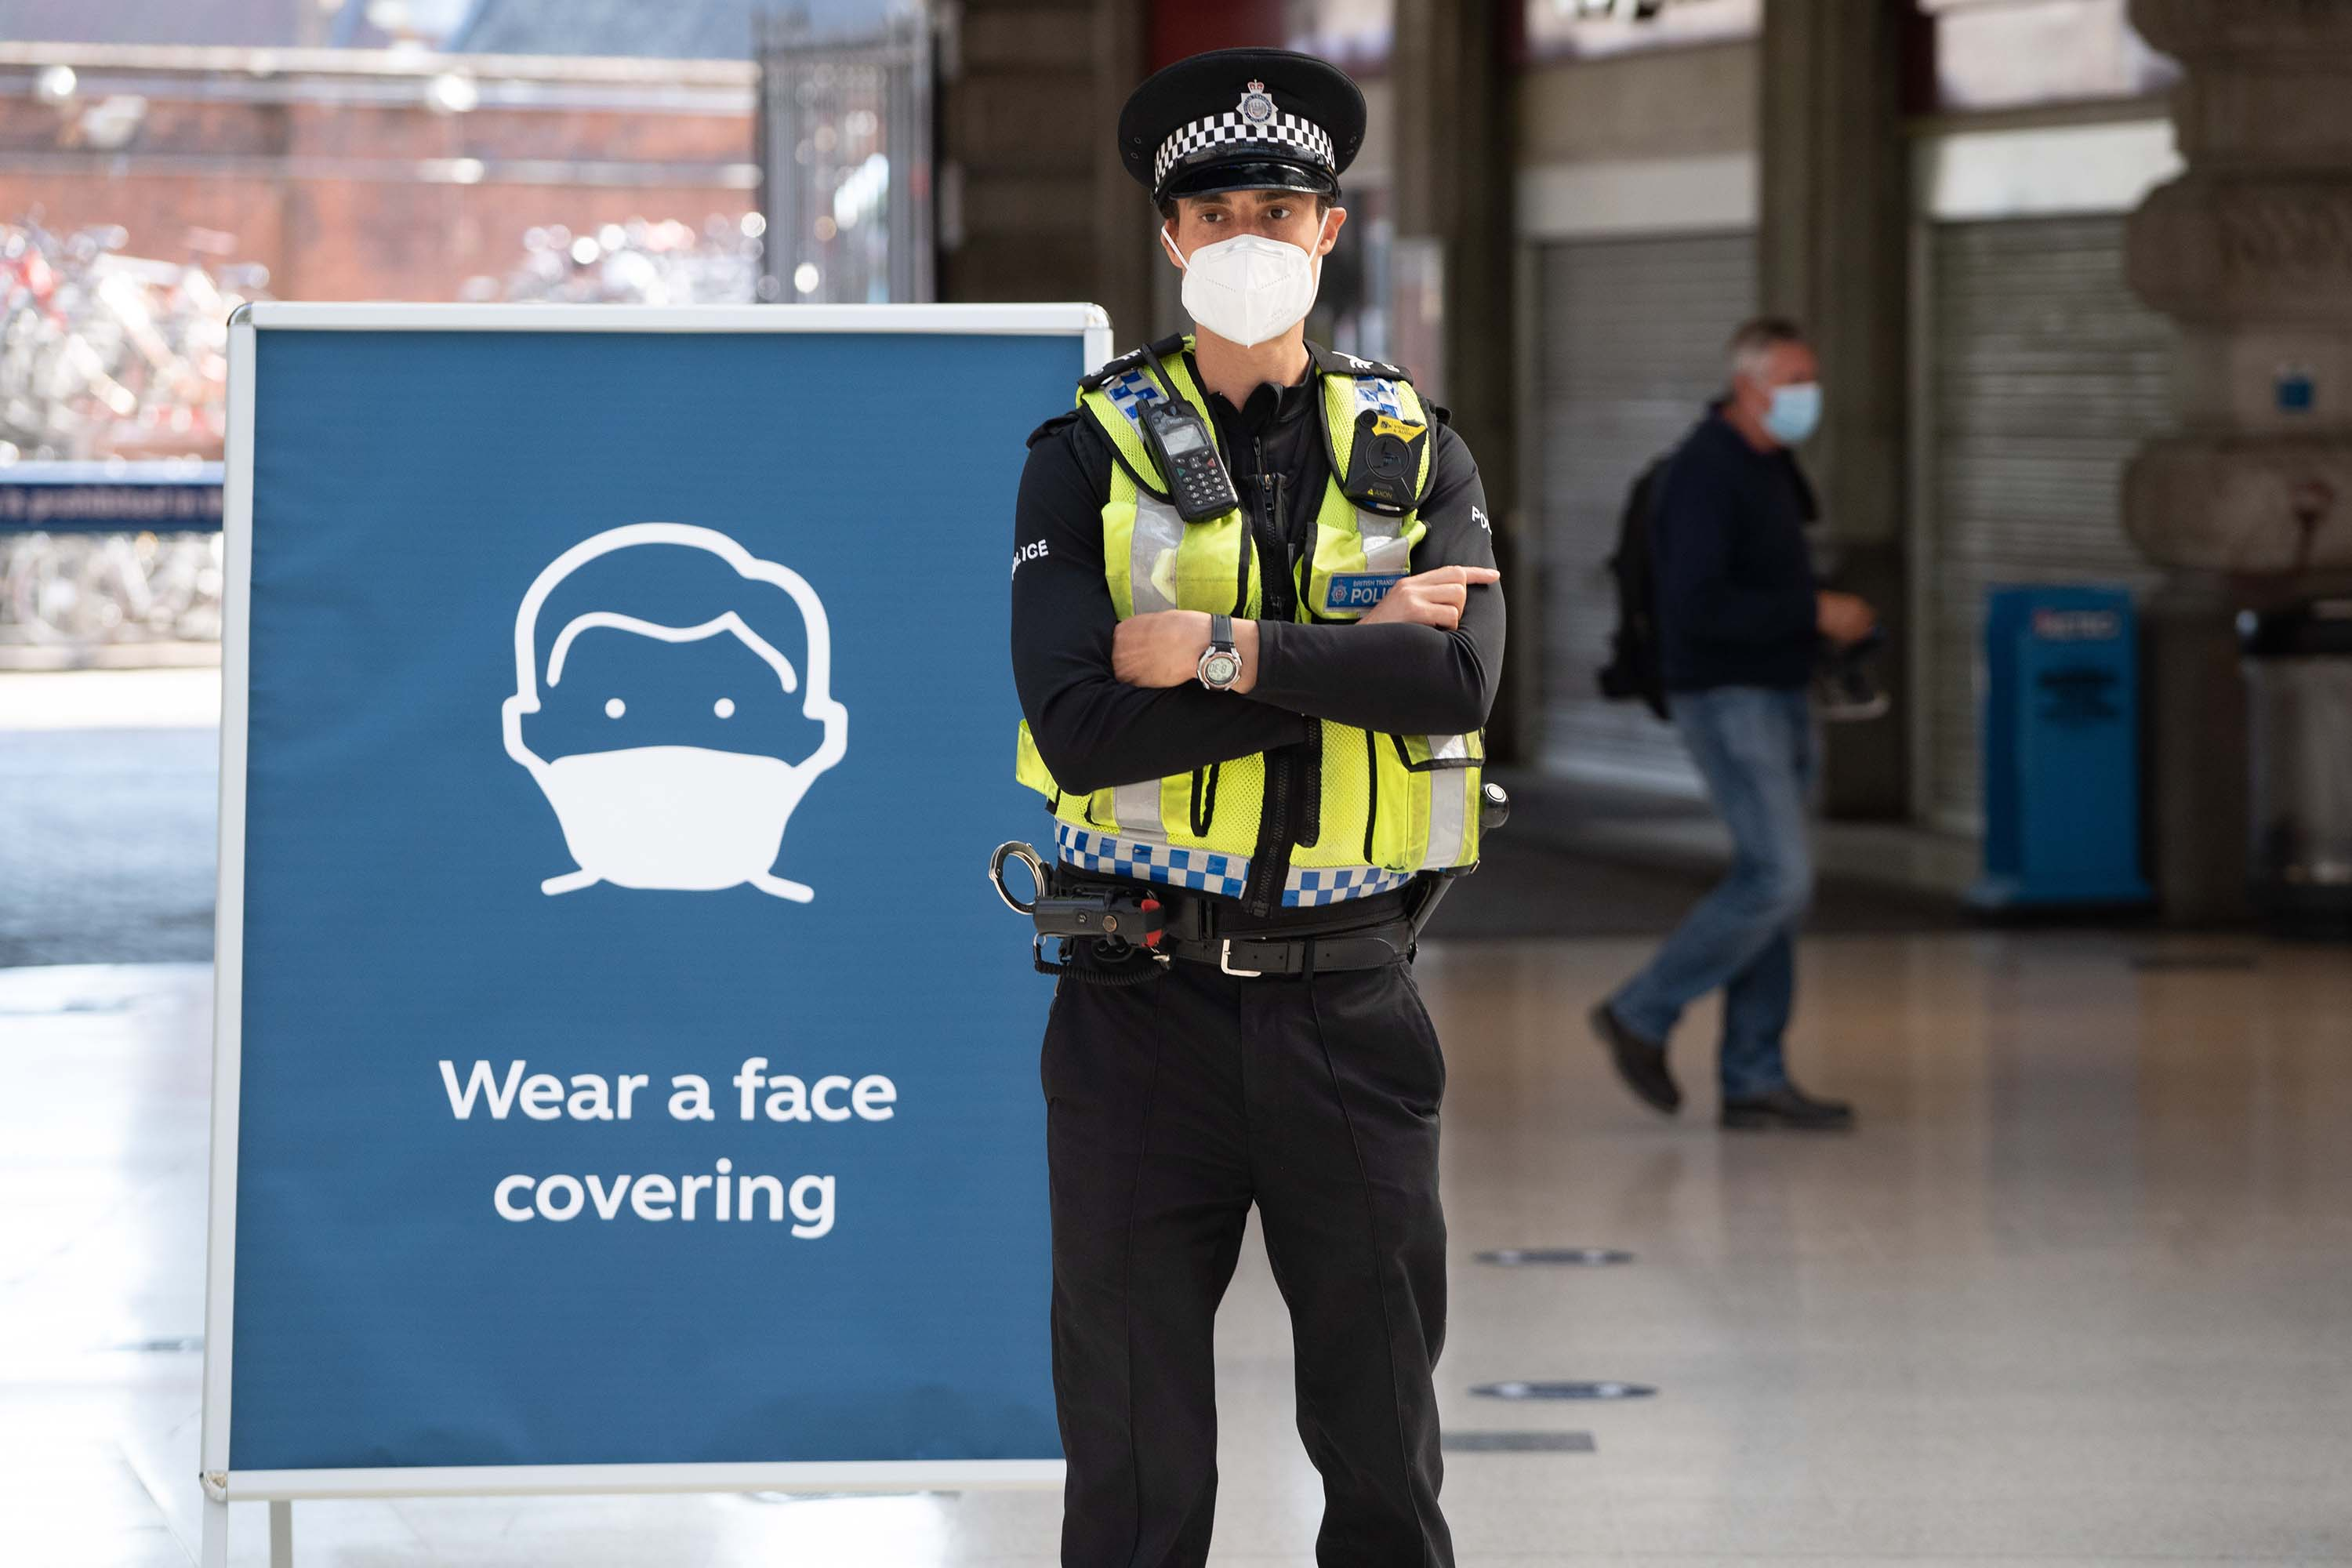 A police officer wears a face mask as he stands on the concourse at Waterloo Station in London on Monday, June 15, after new rules came into effect, making wearing face coverings on public transport compulsory.